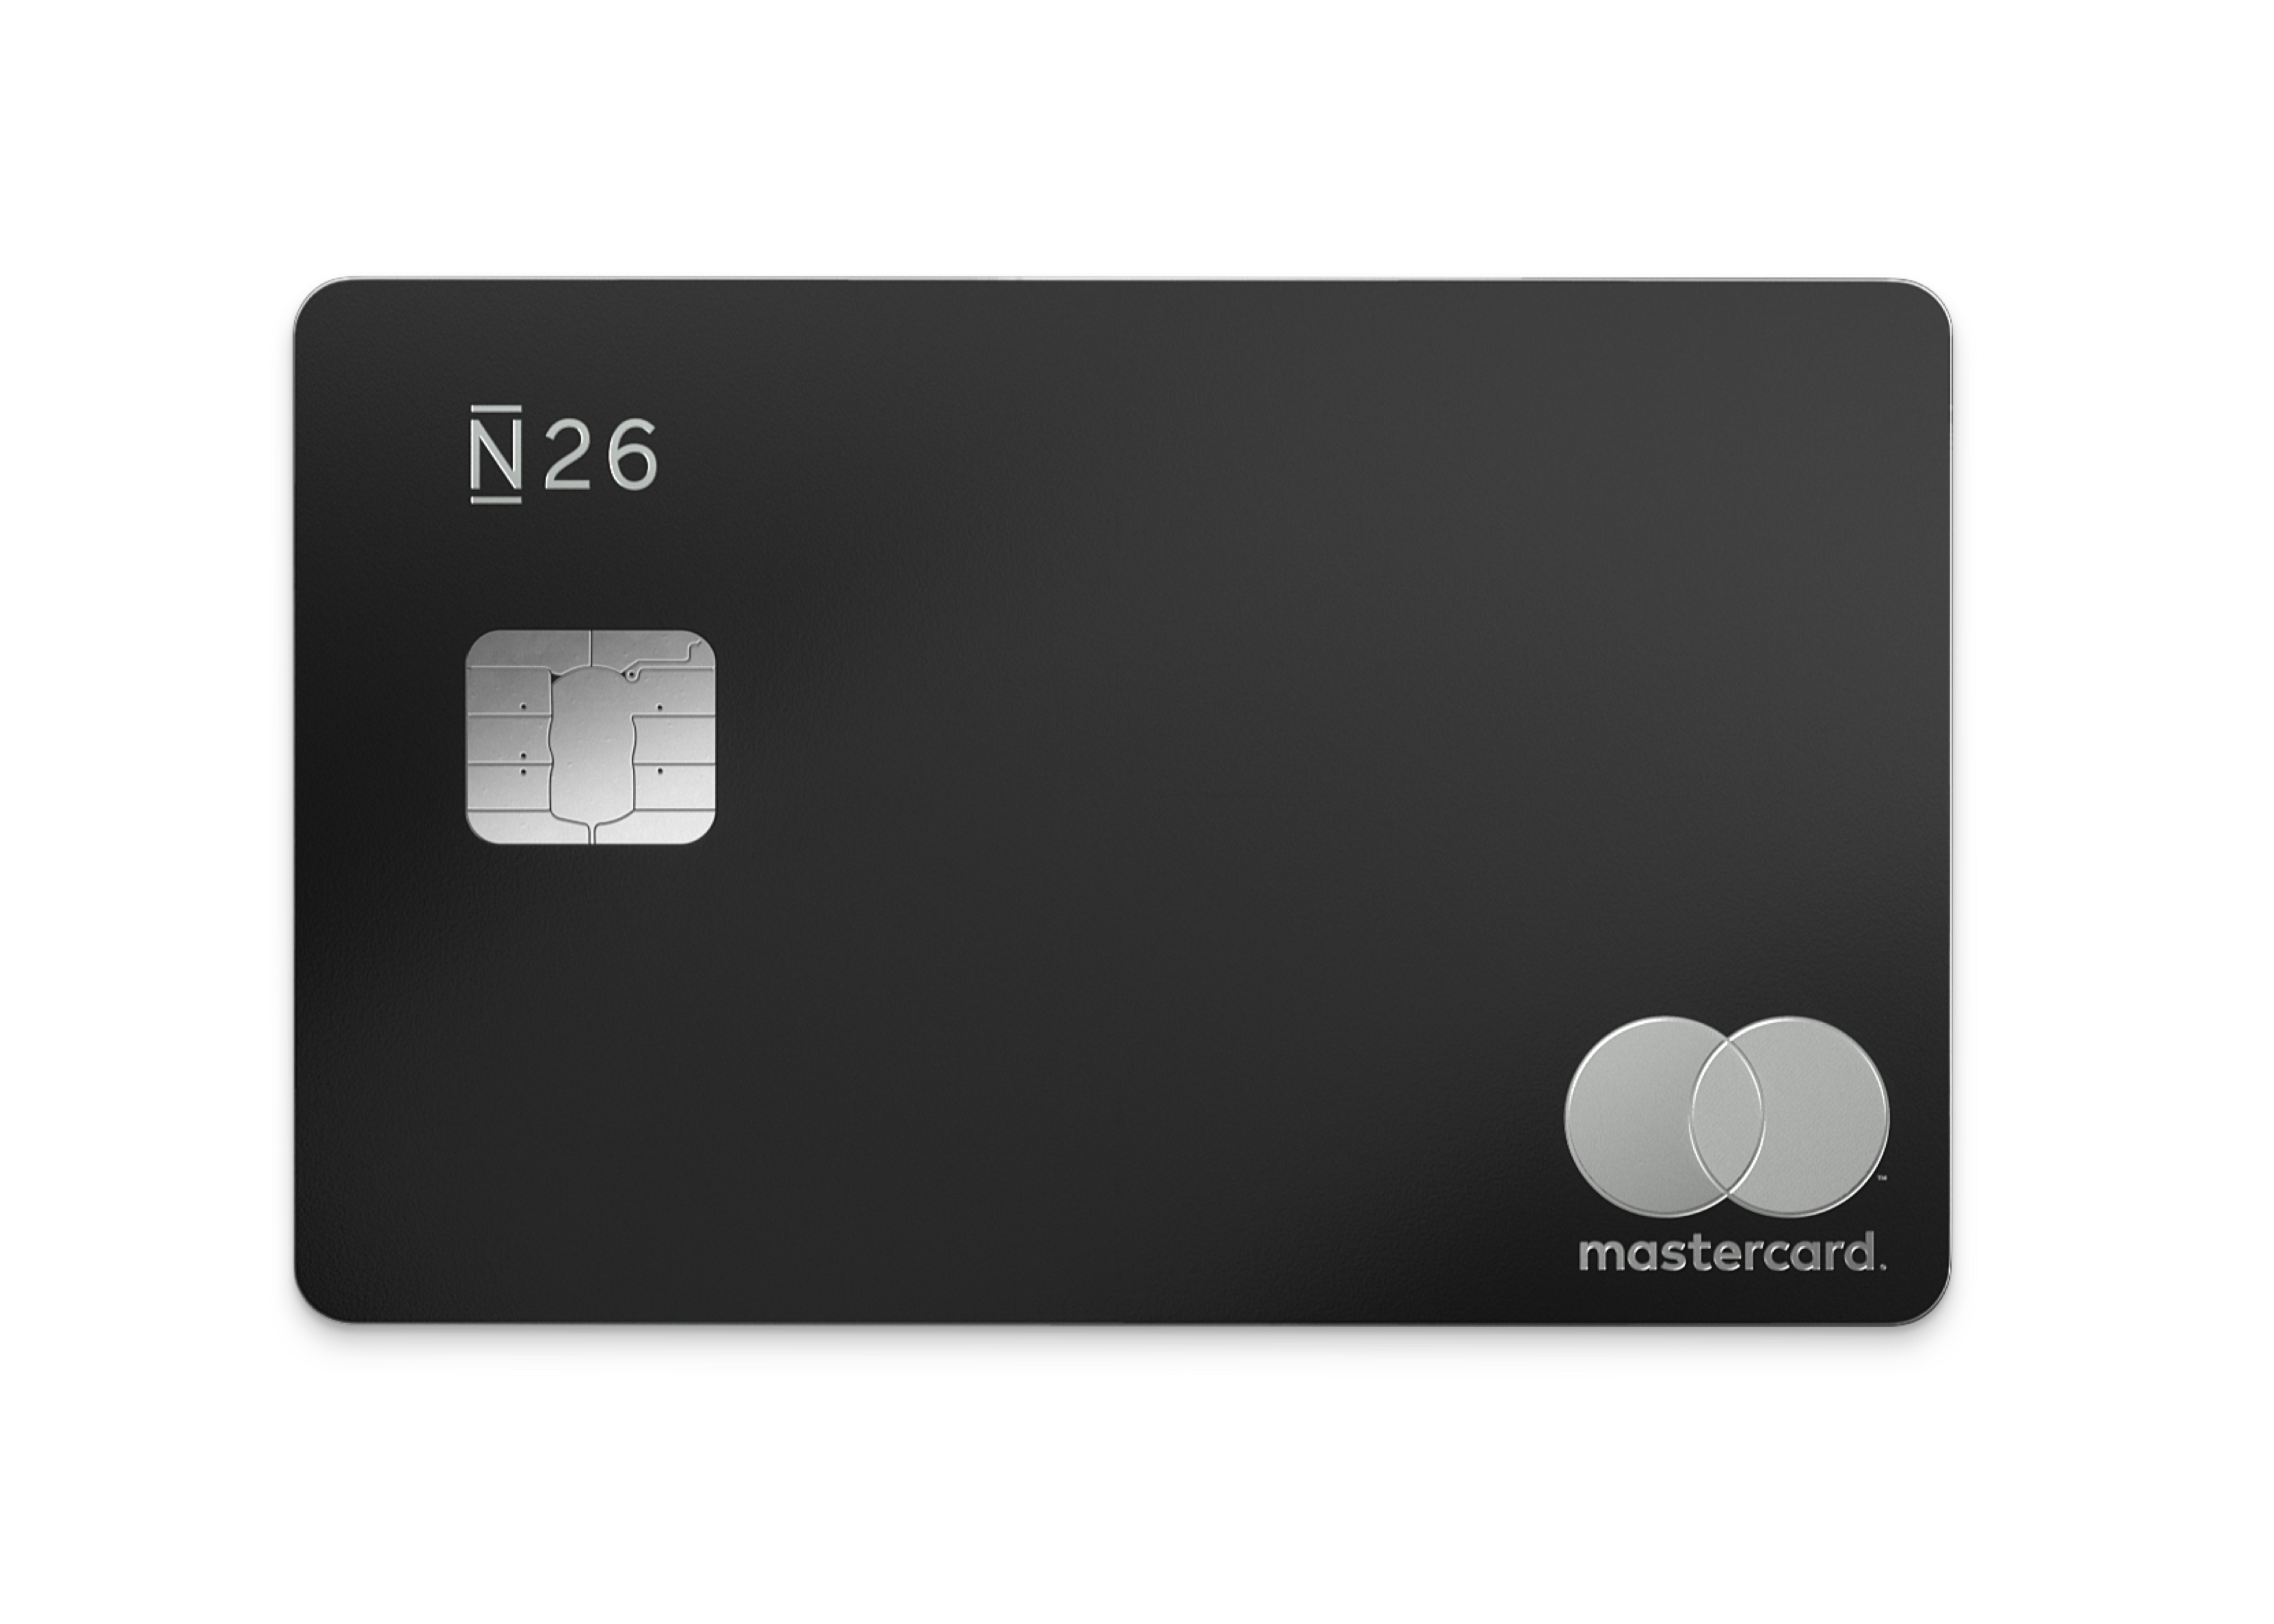 N26 review - N26 bank card sample